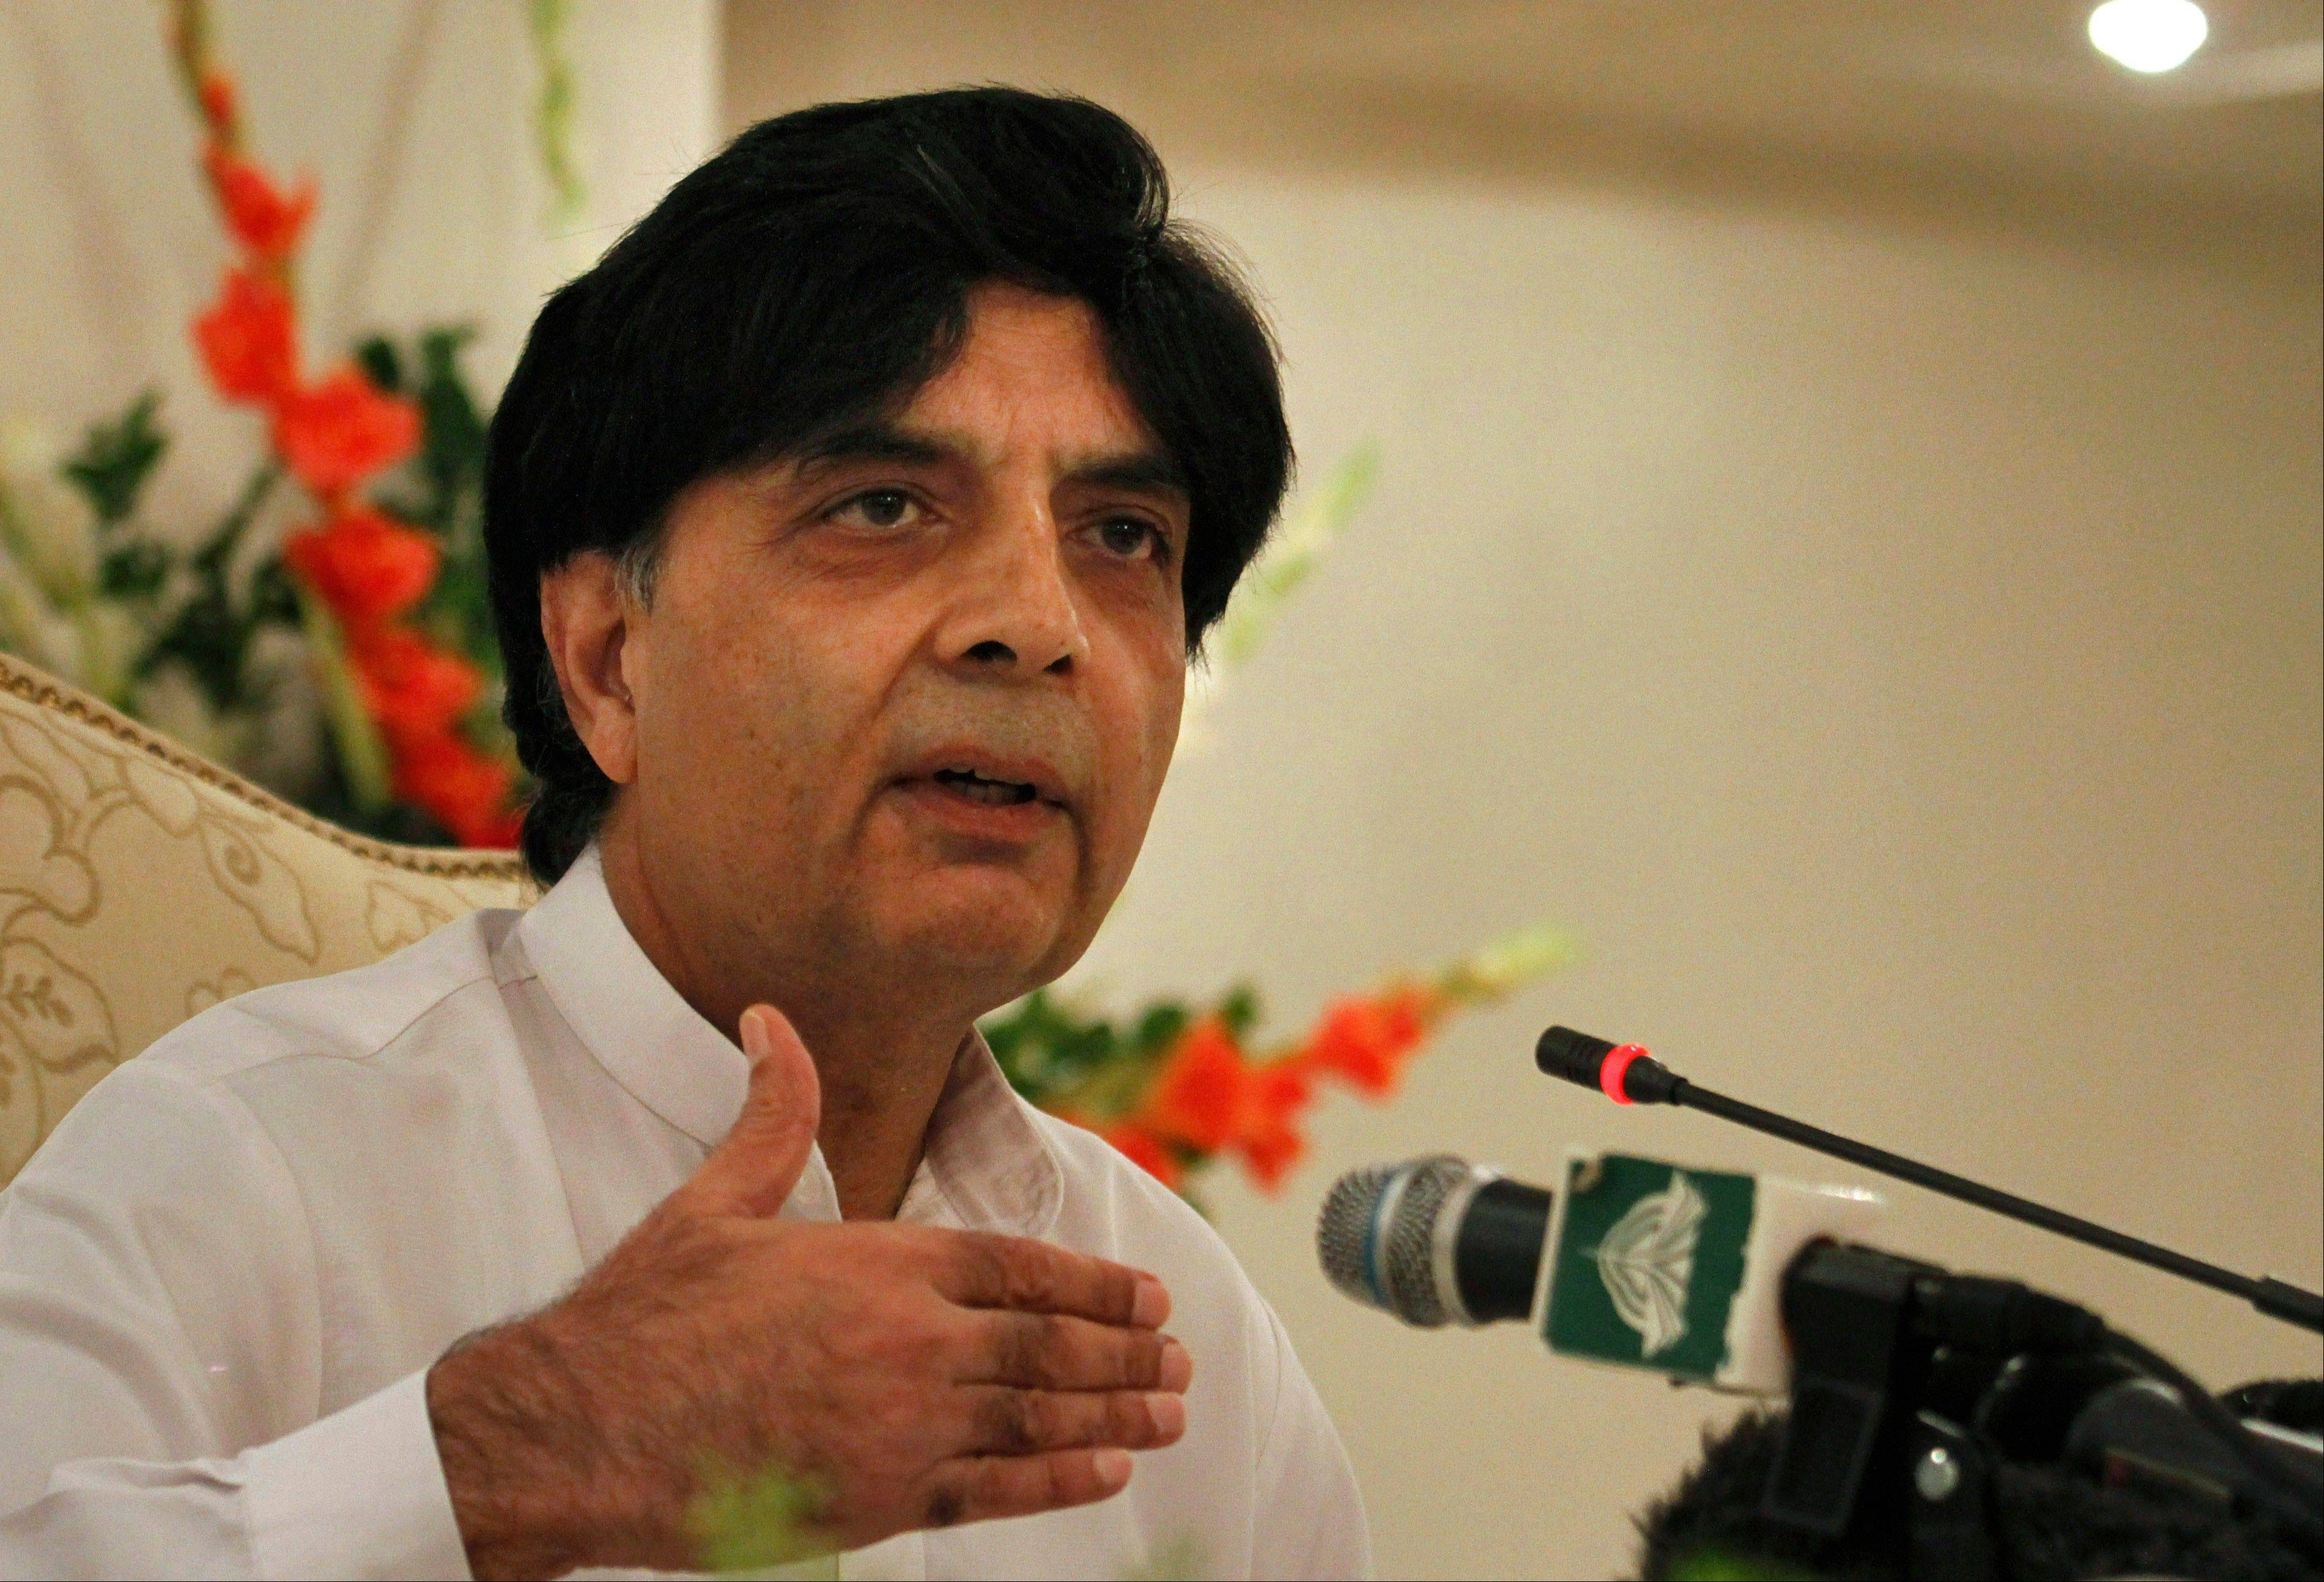 Pakistan's Interior Minister Chaudhry Nisar Ali gestures Saturday during a press conference regarding the killing of Pakistani Taliban chief, in Islamabad, Pakistan. The Pakistani Taliban confirmed the death of their leader, Hakimullah Mehsud, in a U.S. drone strike.